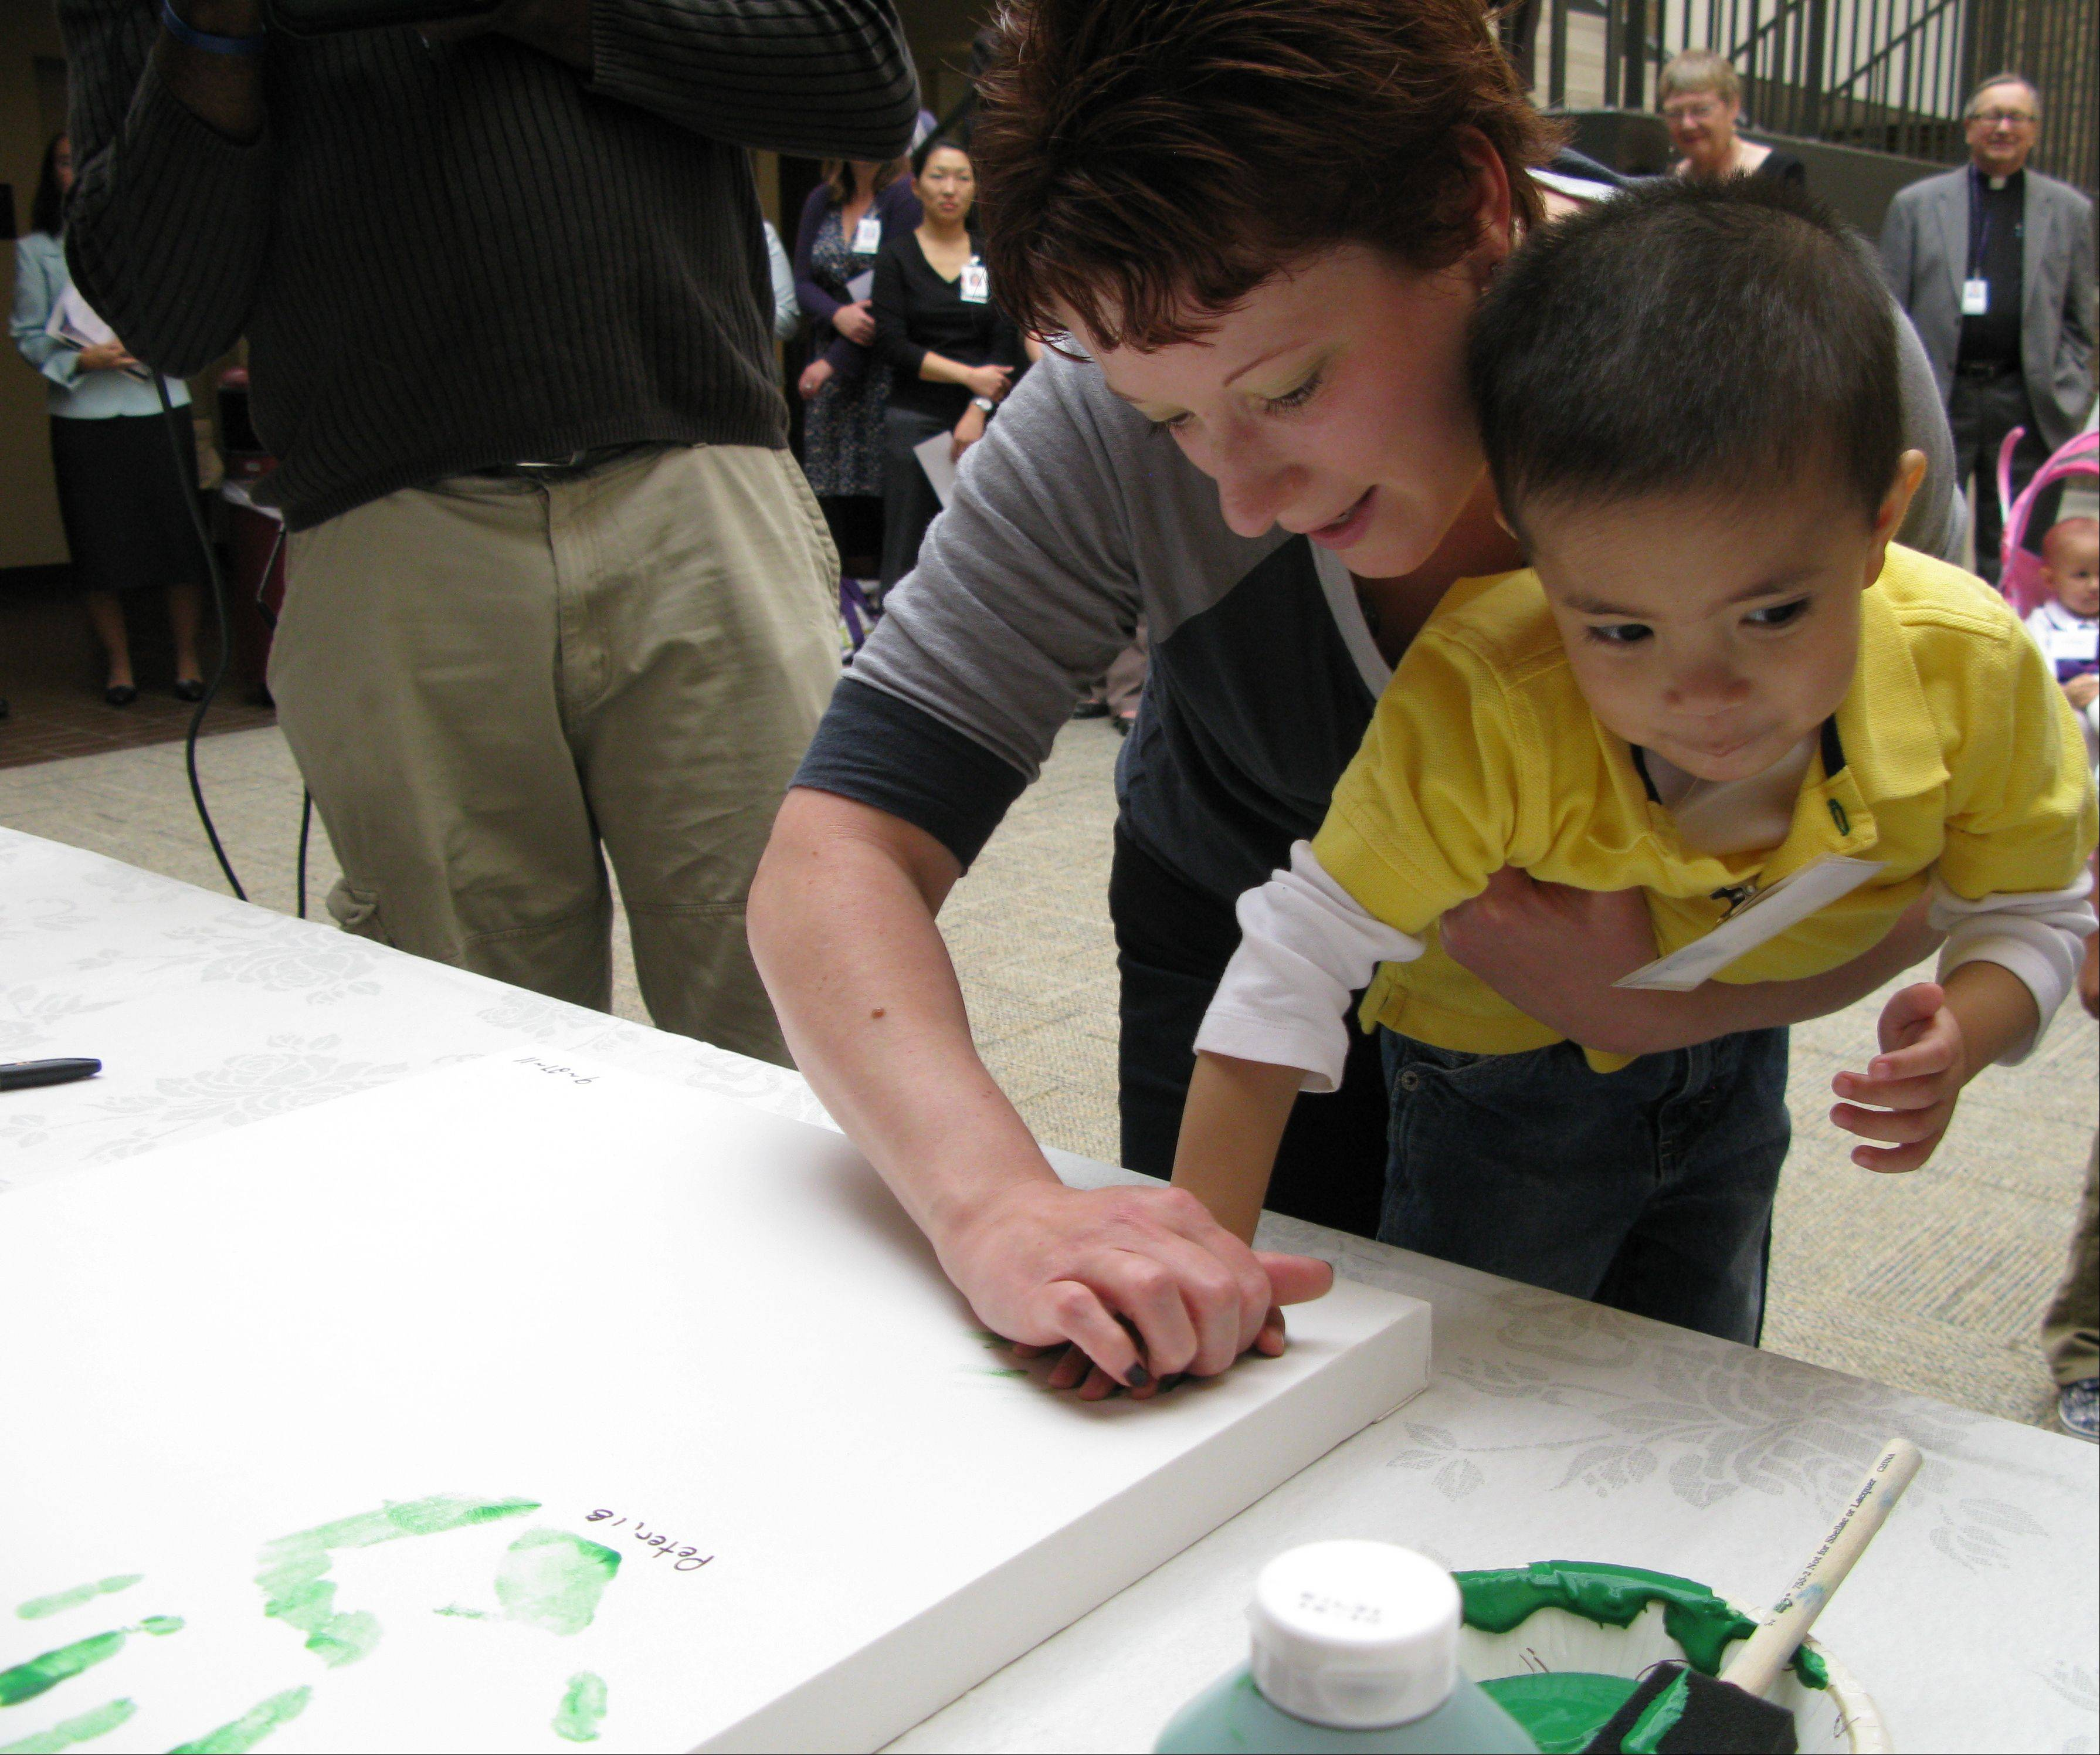 Cancer survivor Grayson Cacal, 2, of Chicago and his mother, Sara, make a hand imprint on a canvas that will grace a wall at Advocate Lutheran General Children's Hospital in Park Ridge, which Tuesday received a $100,000 grant to help fund its Pediatric Cancer Survivorship Program and clinic.